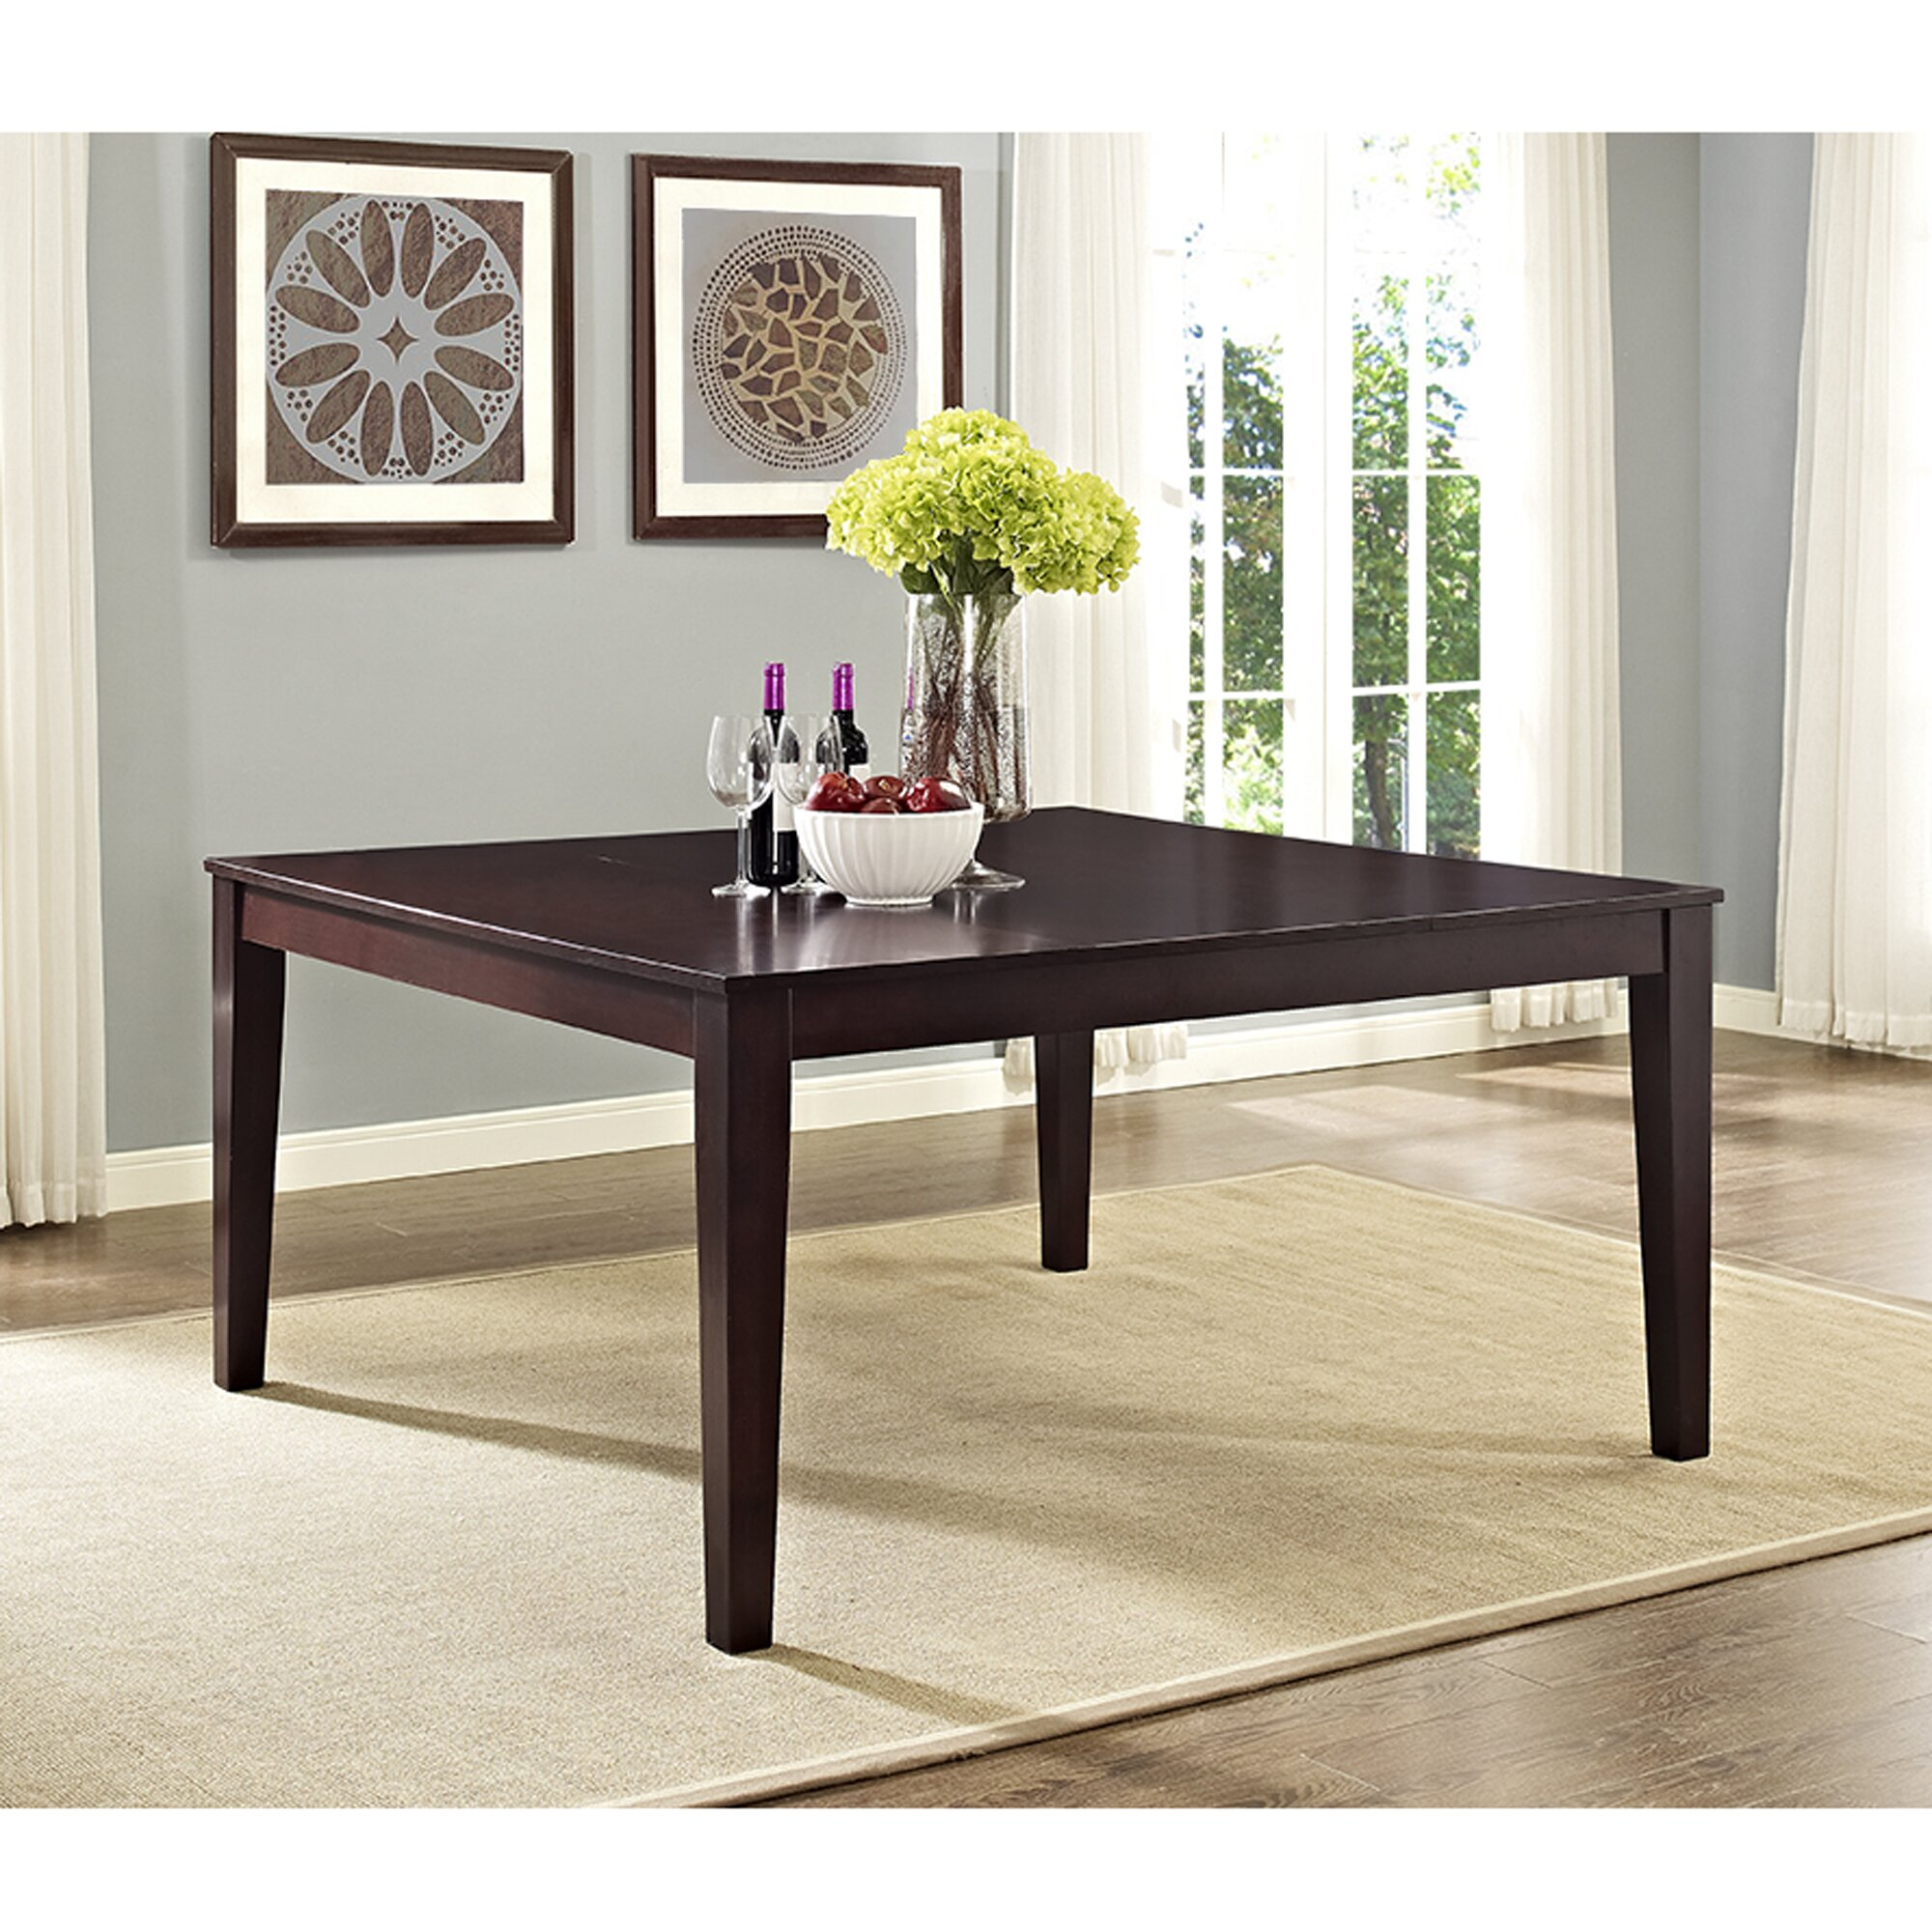 Darby Home Co Roquefort Square Dining Table Reviews